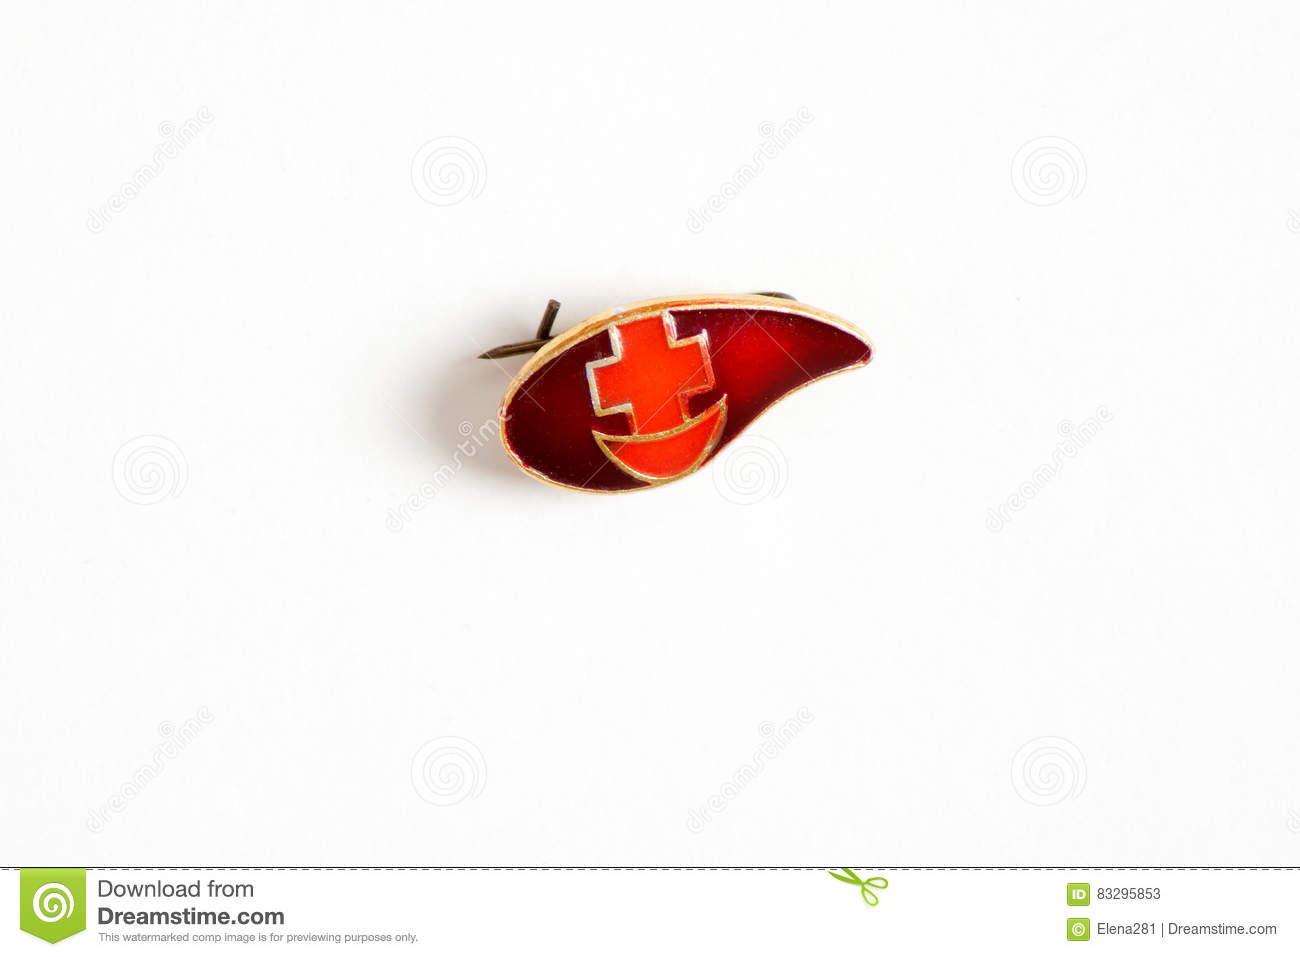 d5a76e6de7db Badge In The Form Of A Blood Drop With A Cross And Crescent ...